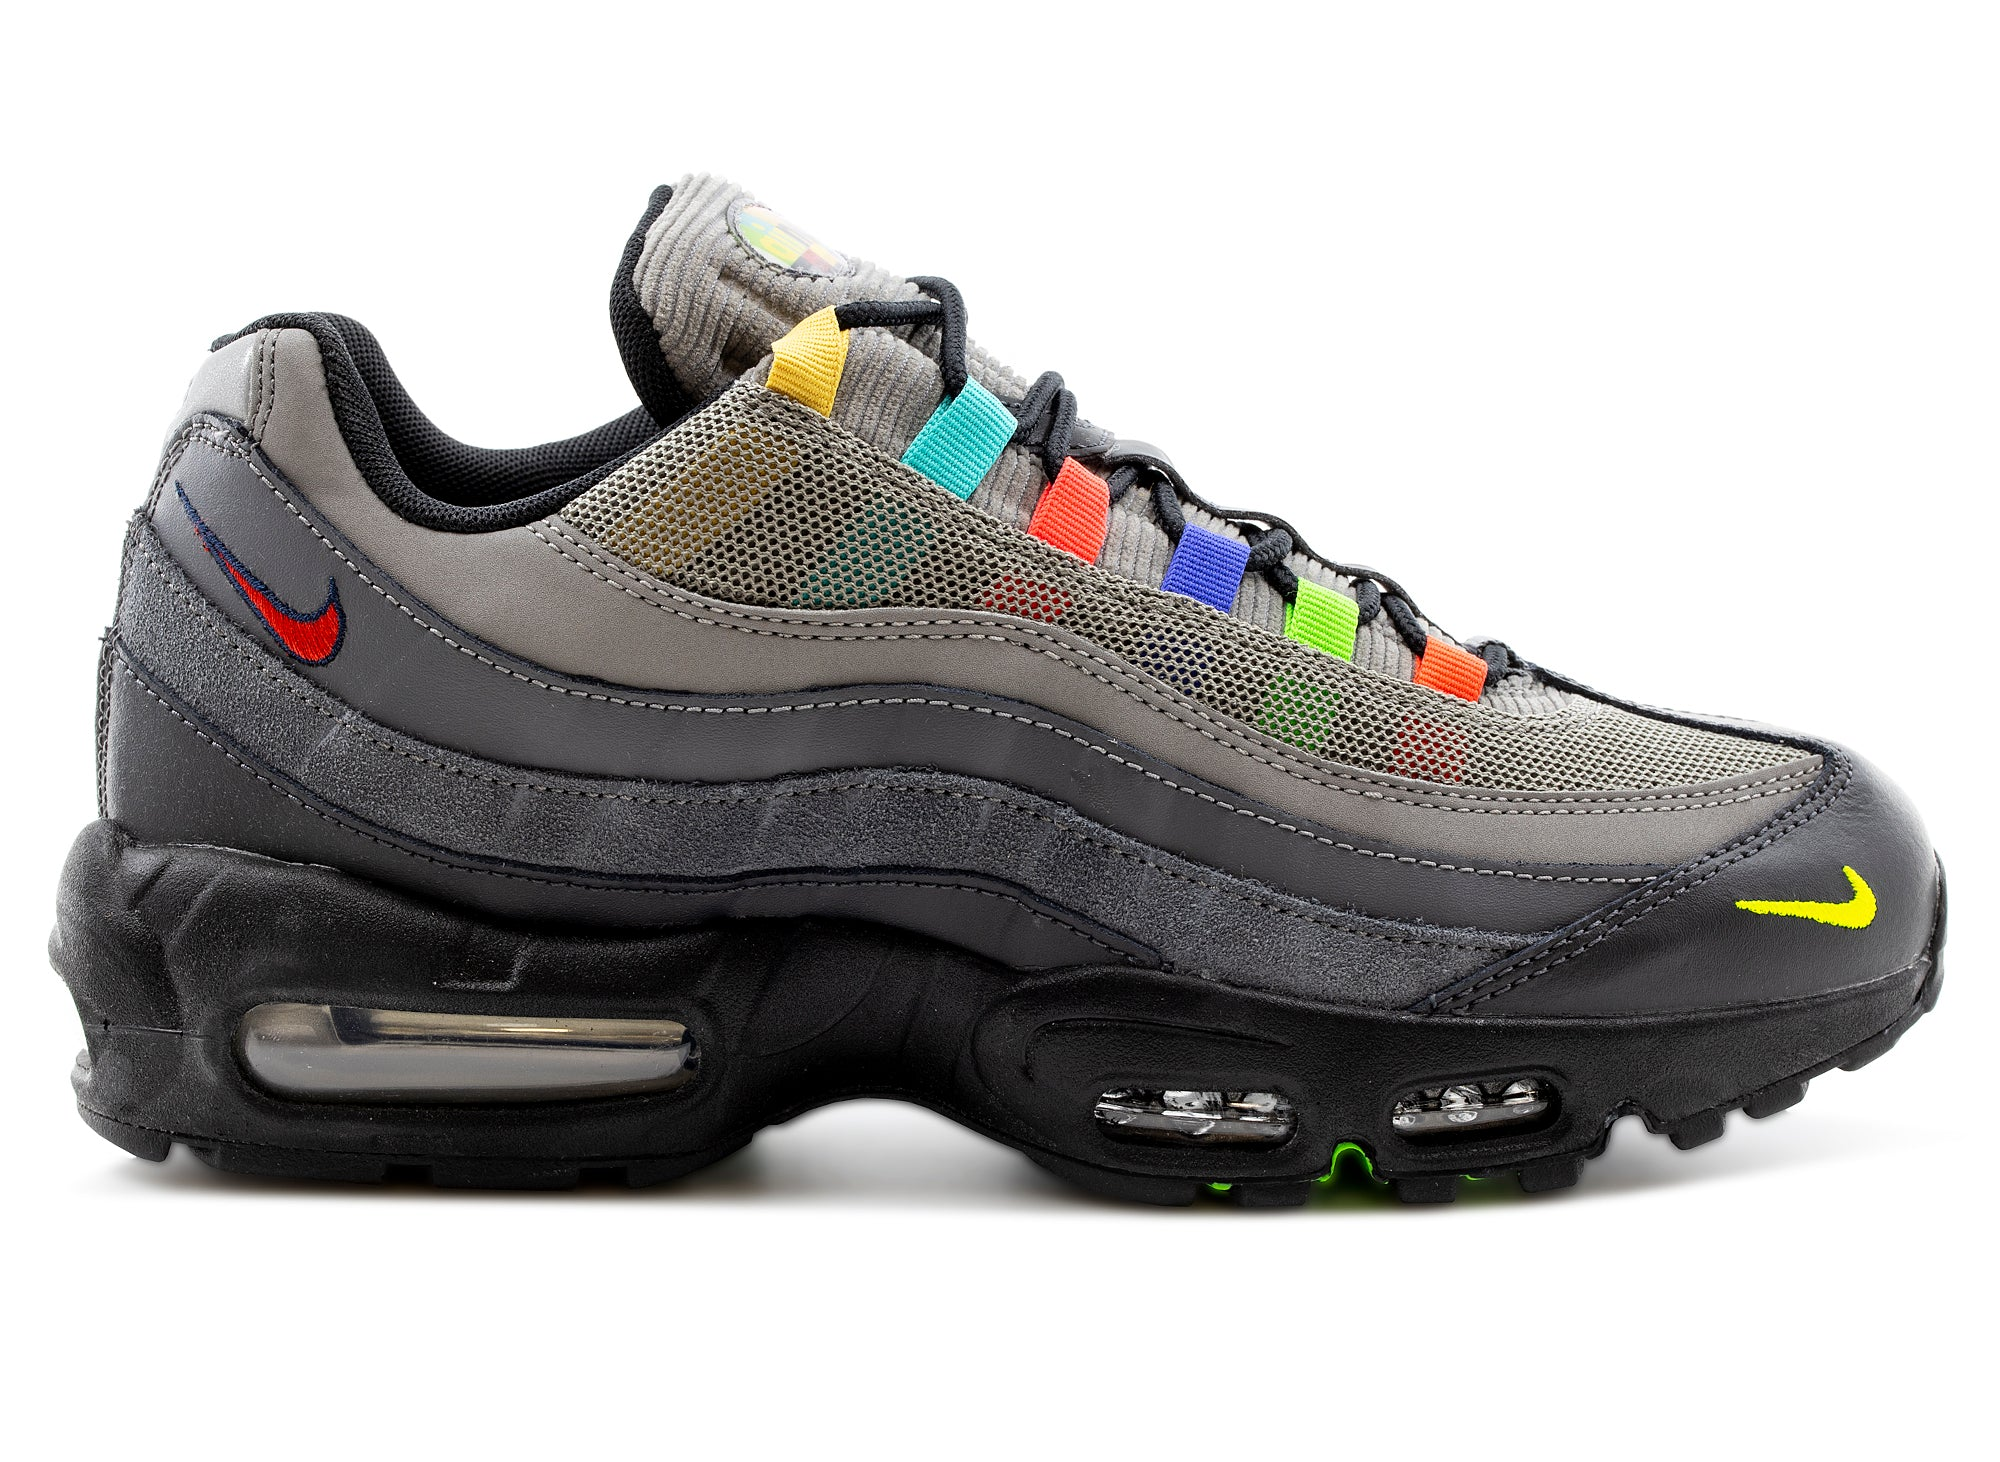 Nike Air Max 95 SE 'Evolution of Icons' xld